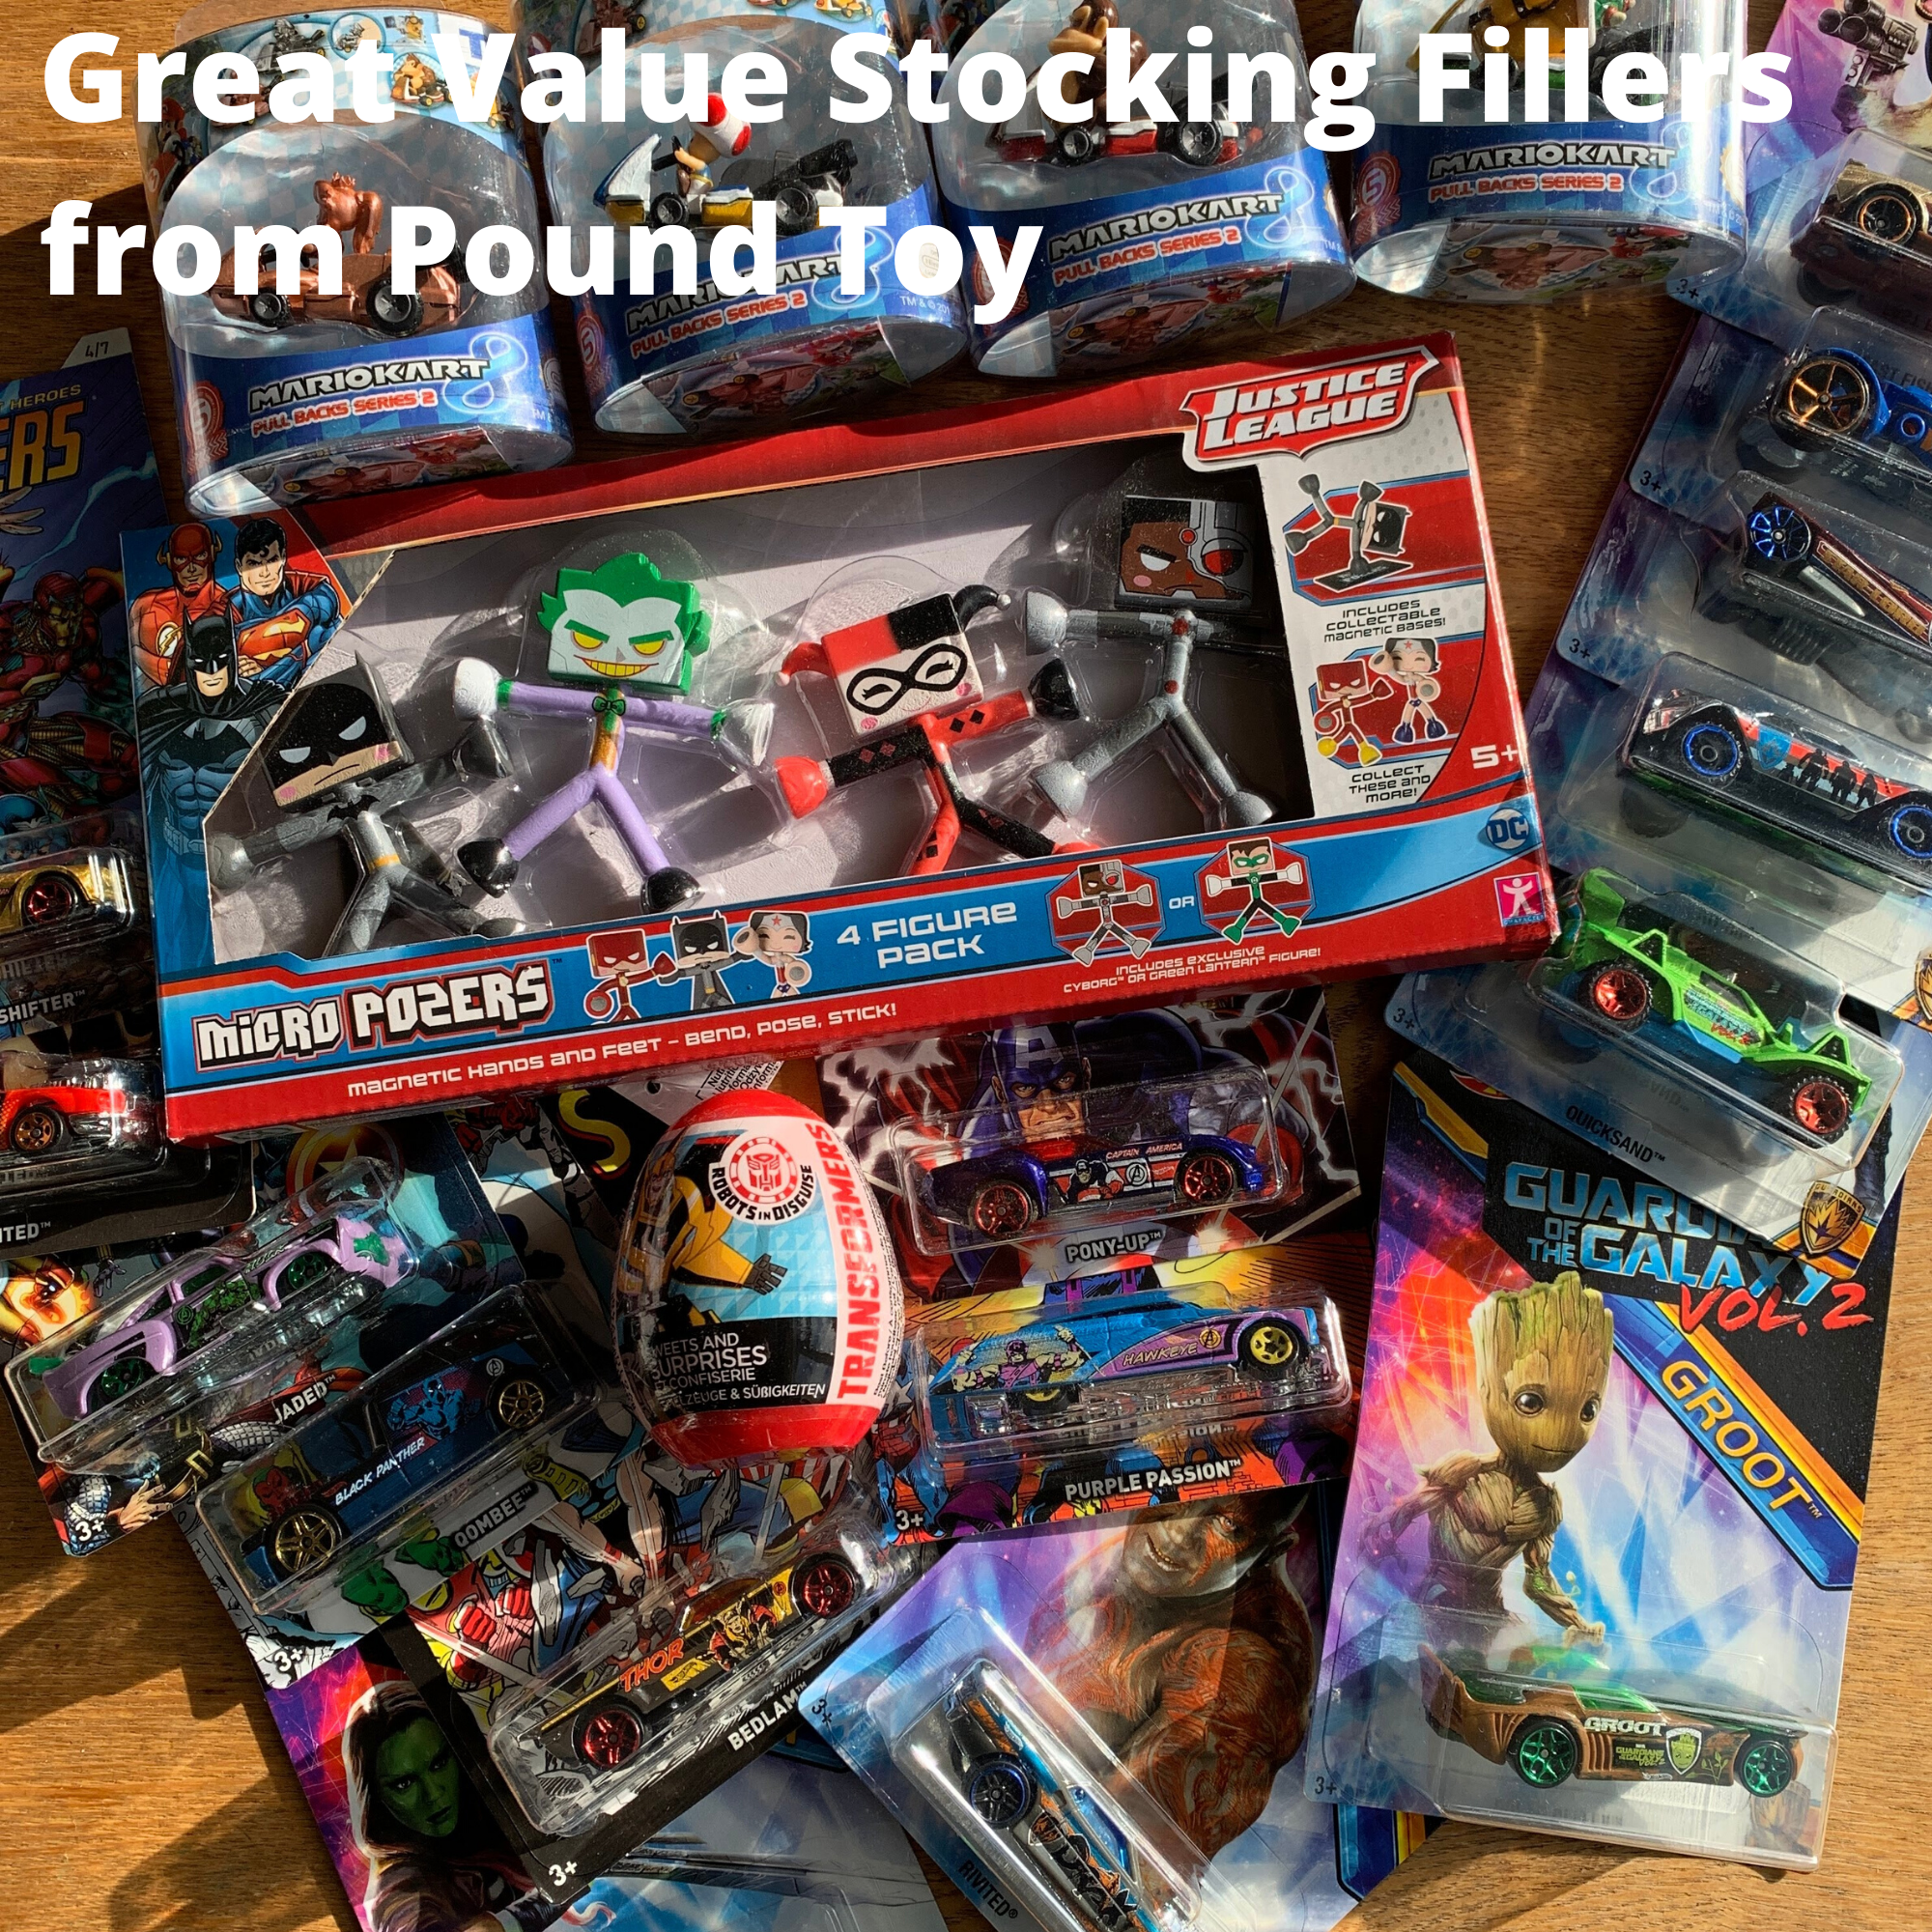 Great Value Stocking Fillers from Pound Toy